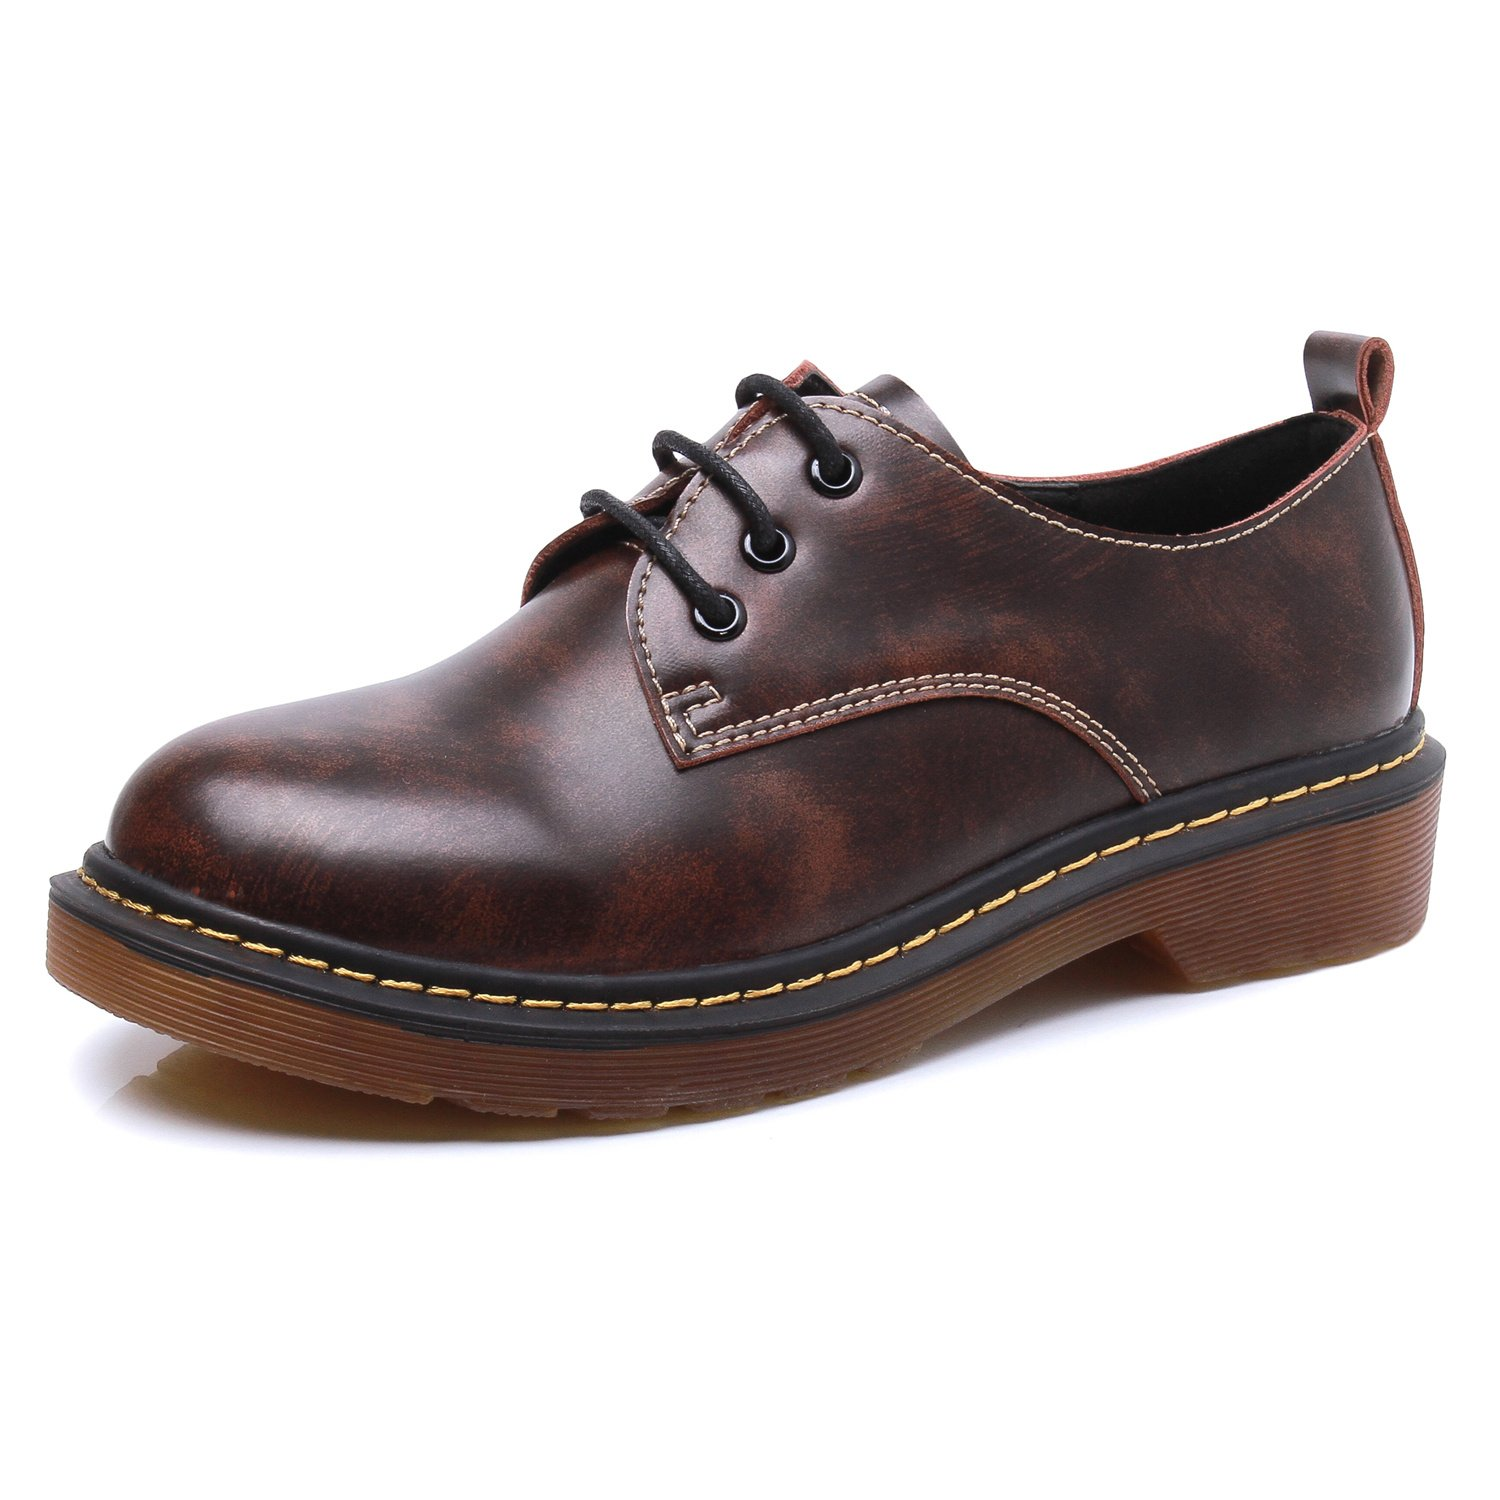 Smilun Women¡¯s Formal Shoes Dress Brogues Classic Lace-up Flats Shoes for Jeans for Women Brown Size 8 B(M) US